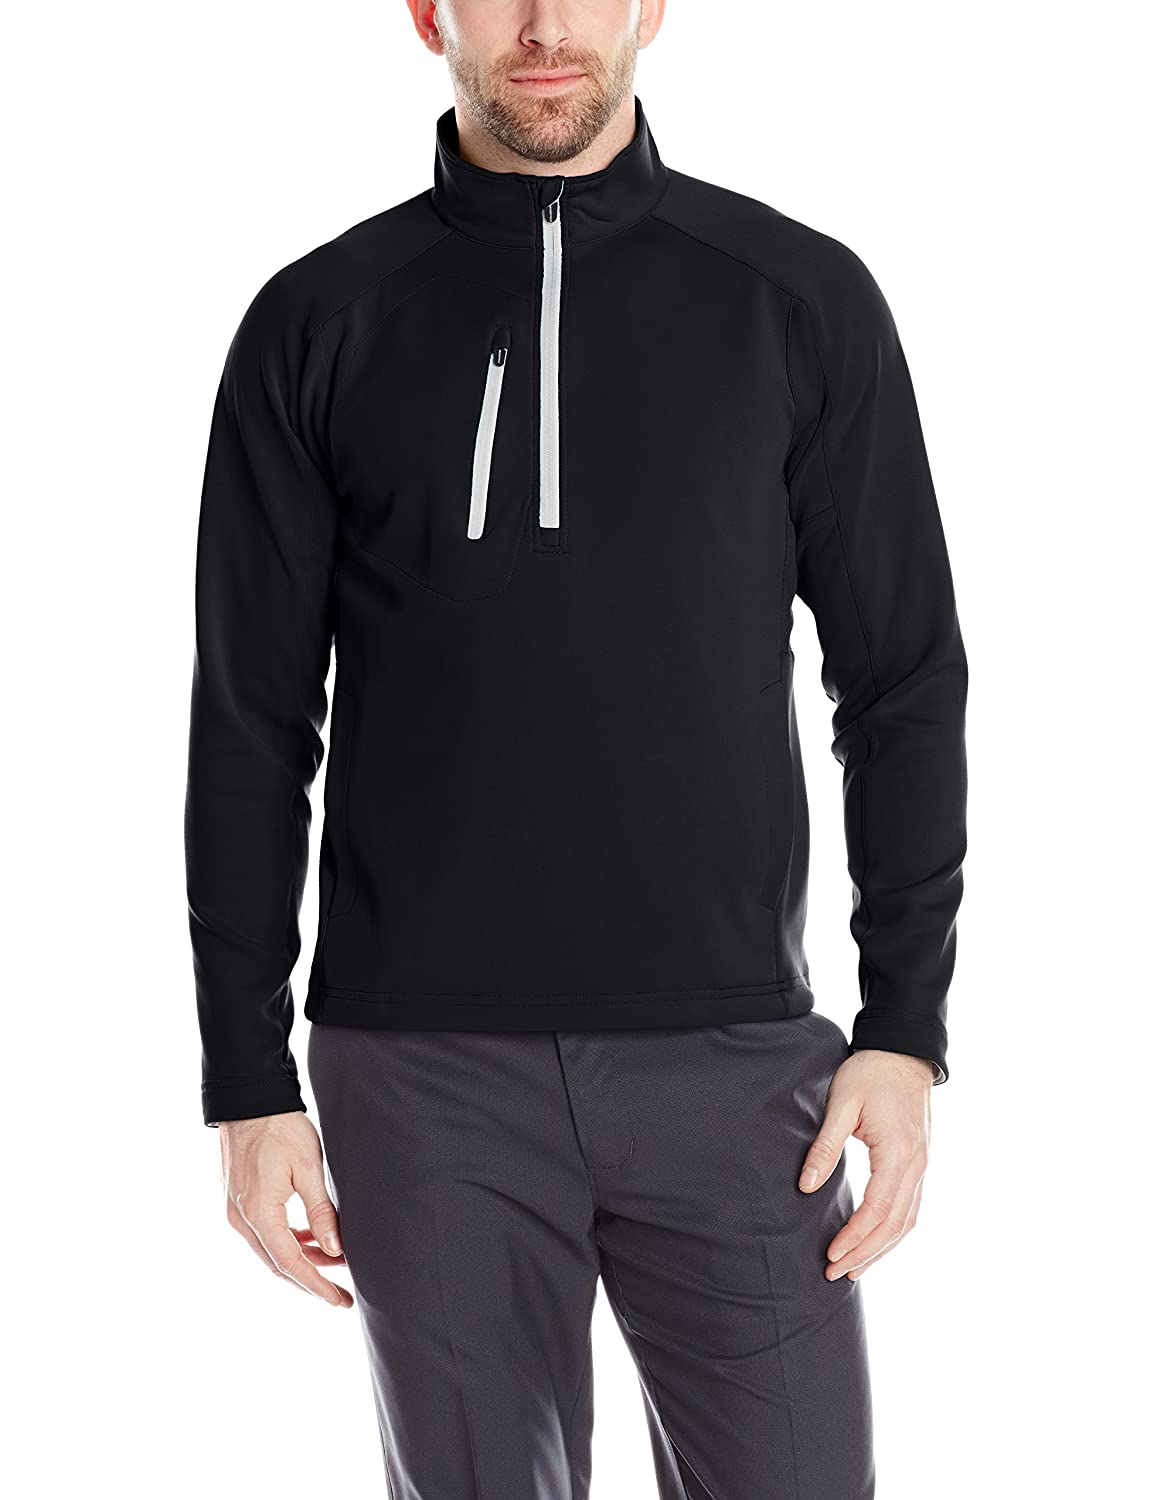 Amazon.com : Zero Restriction Men's Power Torque 1/4 Zip Rain ...